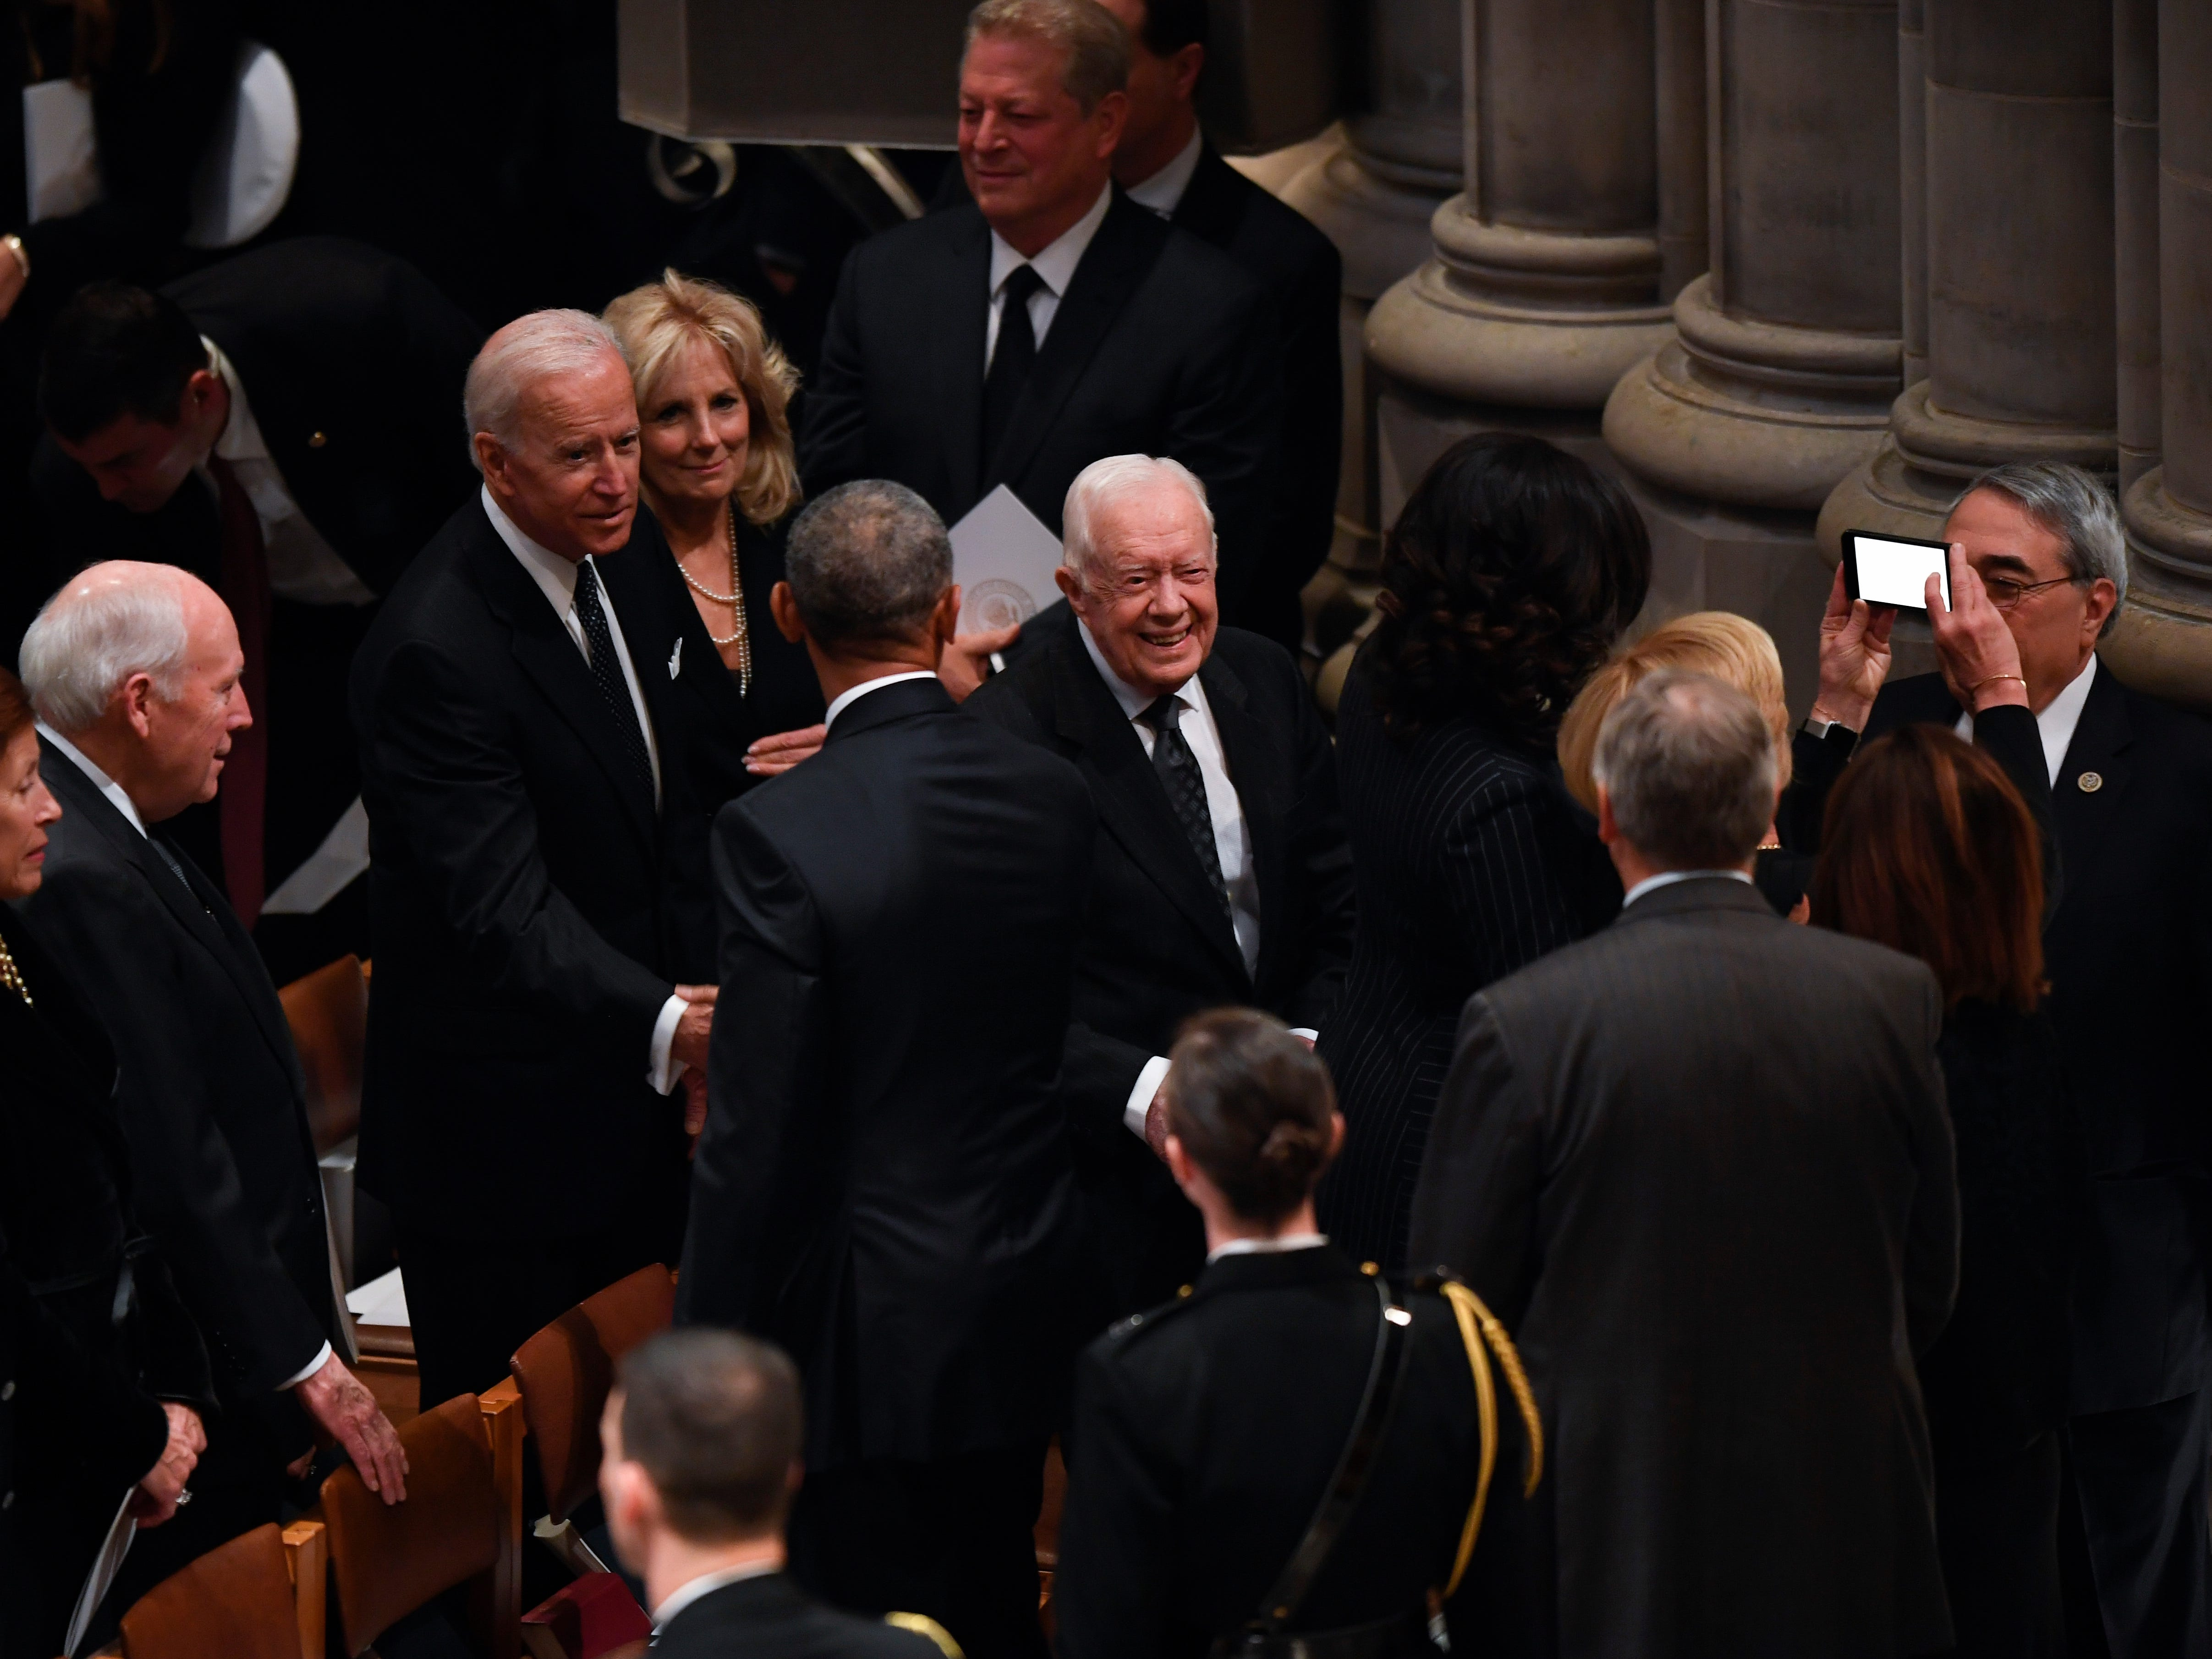 Former President Jimmy Carter and former Vice President Joe Biden arrive at a state funeral for former President George H.W. Bush at the Washington National Cathedral, in Washington, Dec. 5, 2018.